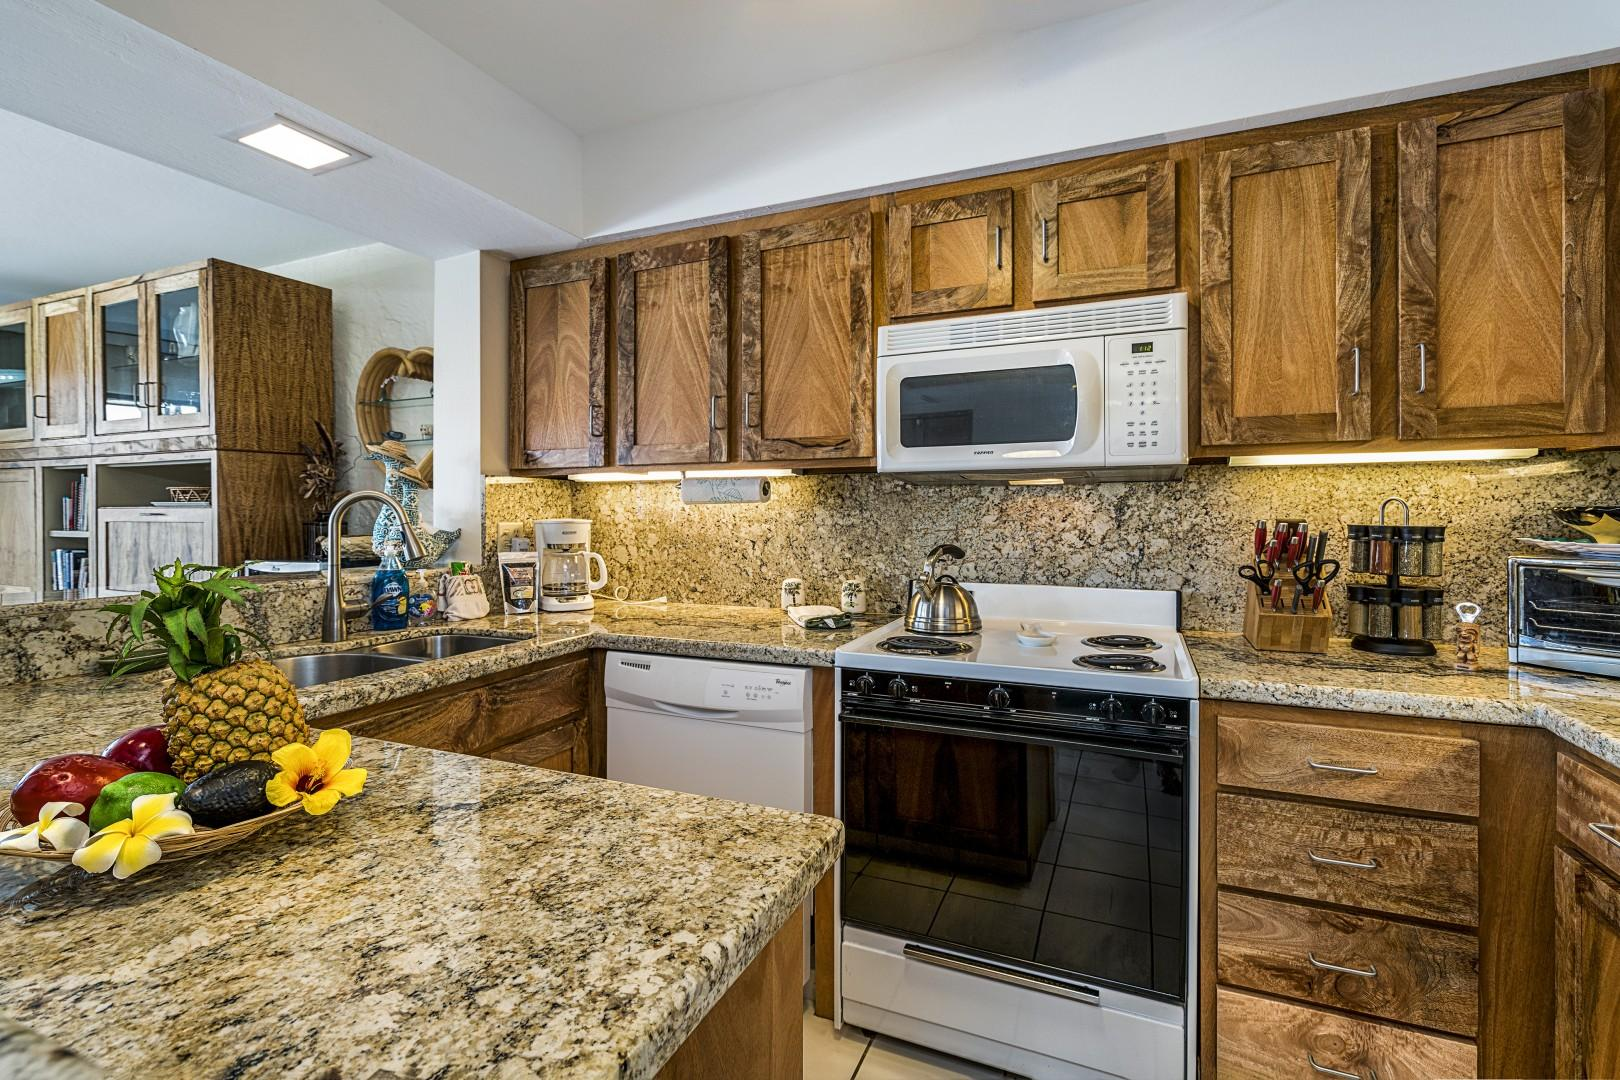 From Mango wood cabinets to granite counters in this kitchen!